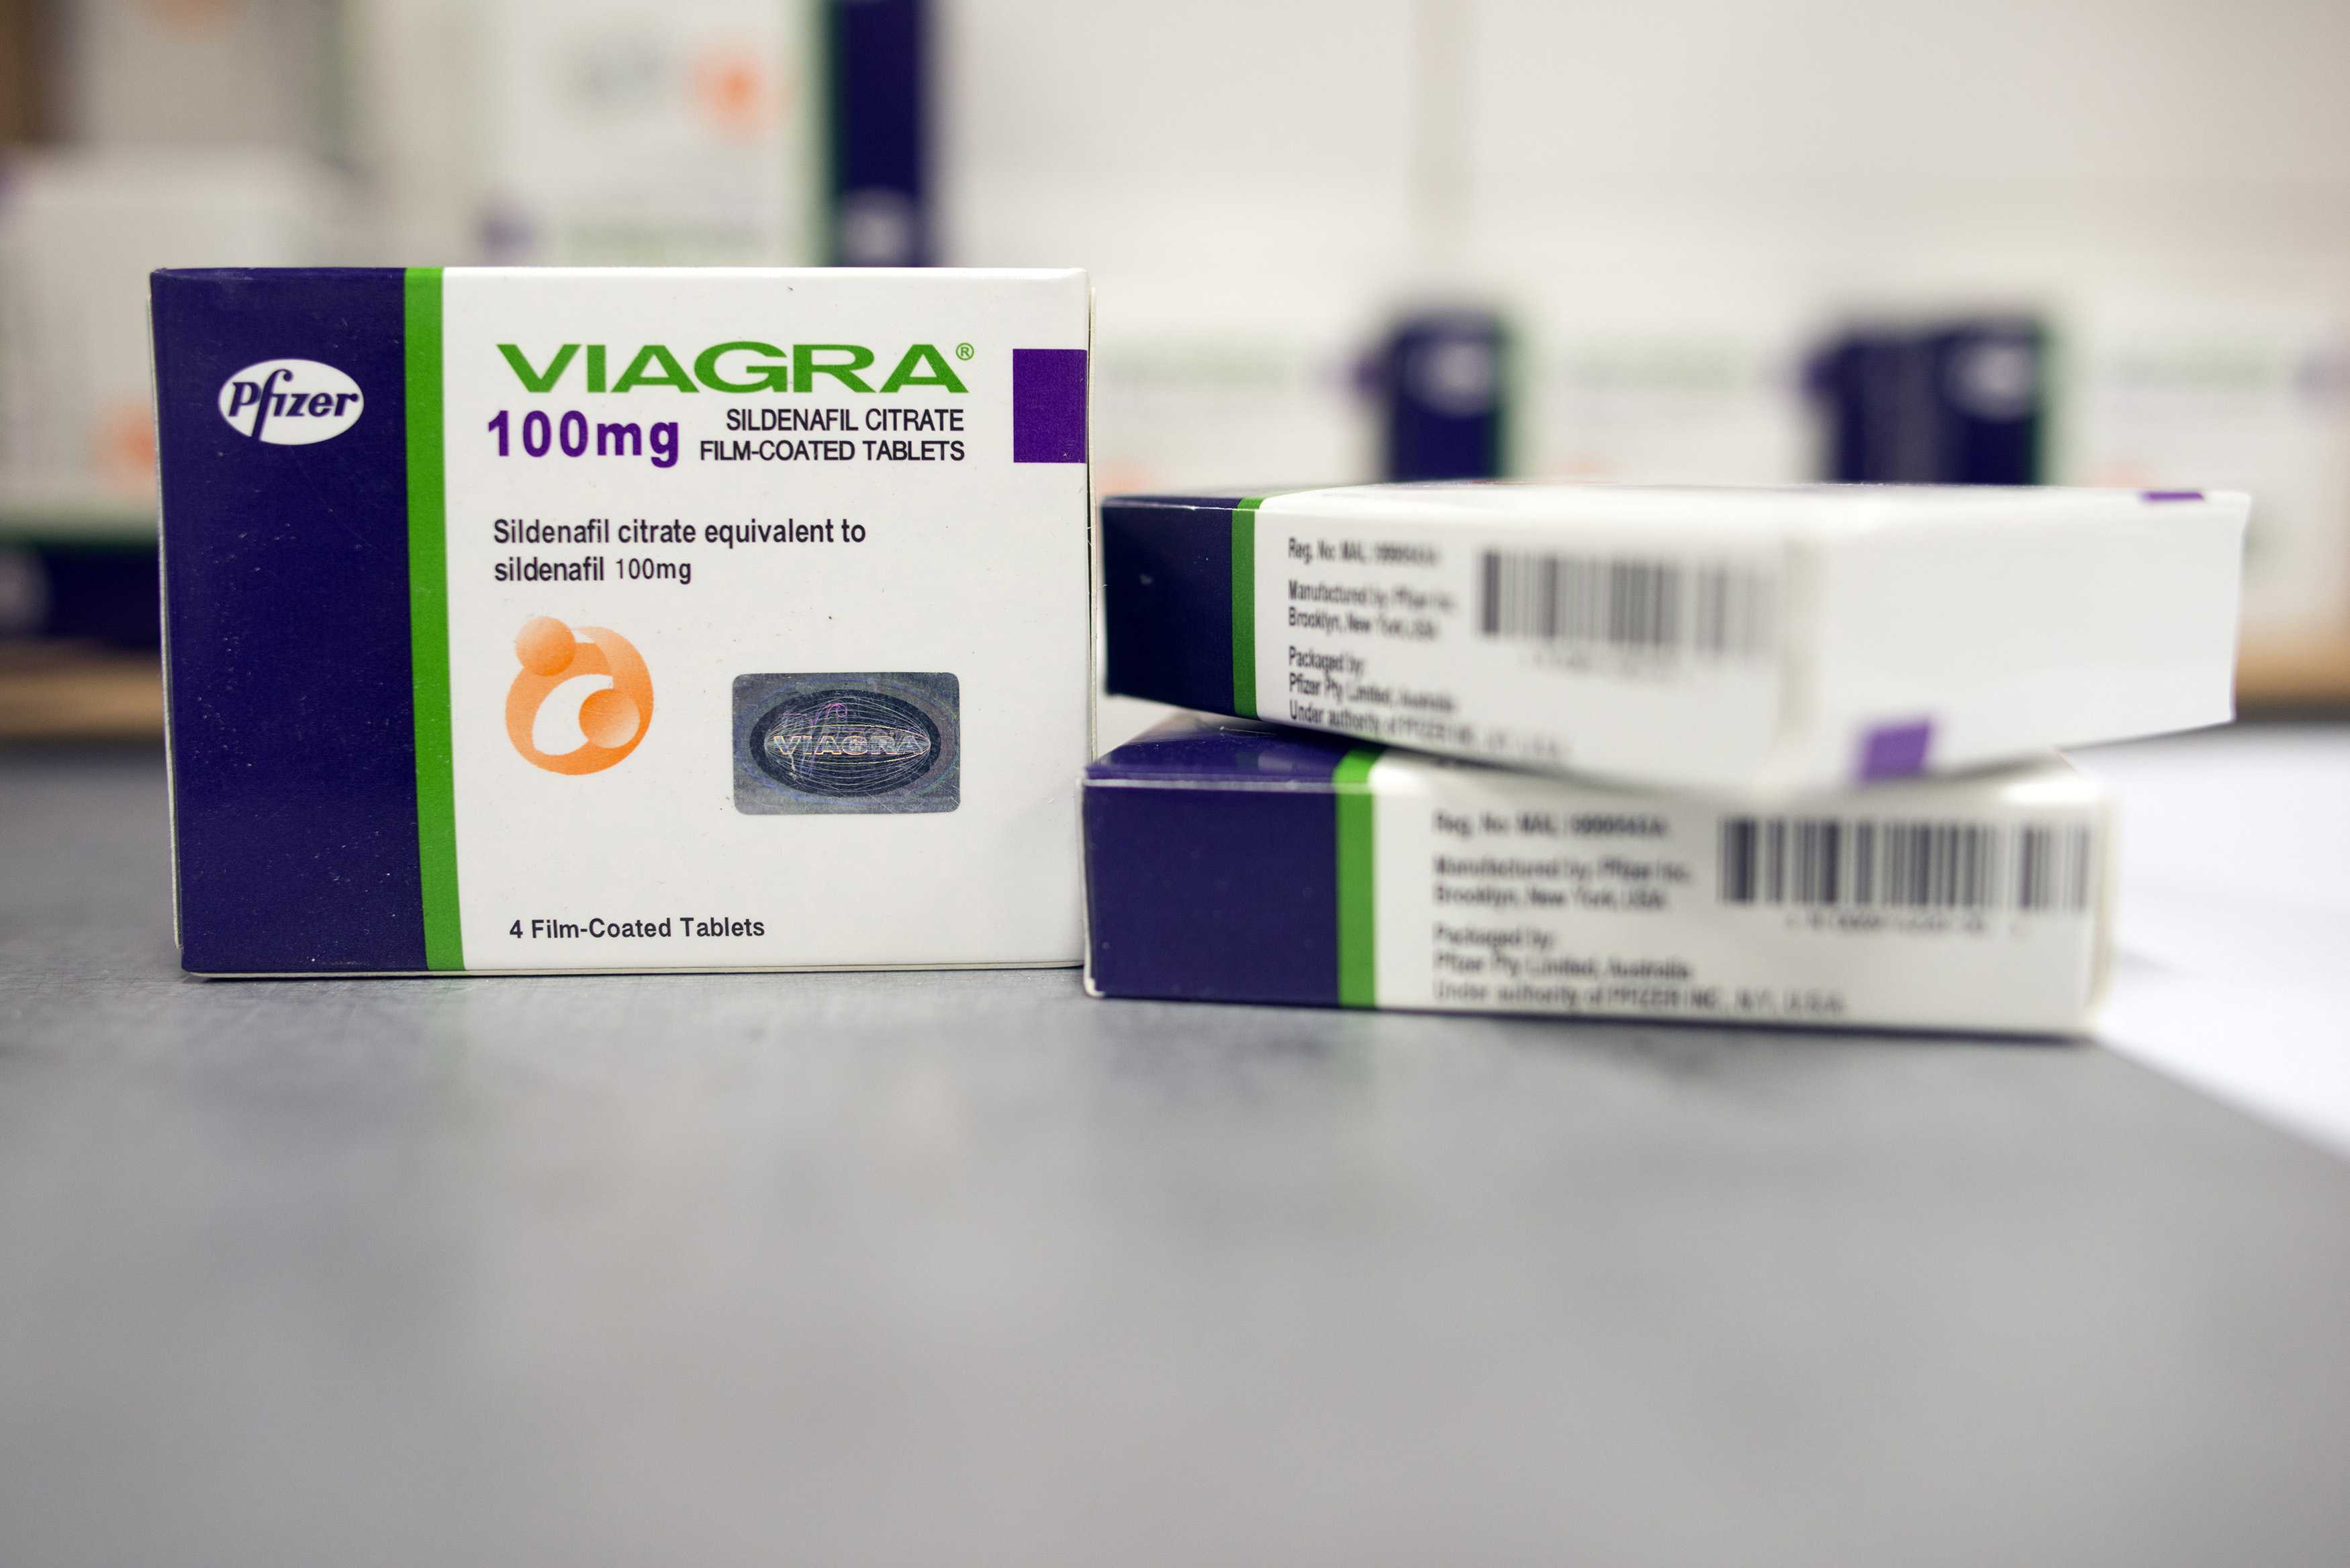 How to buy viagra online in india